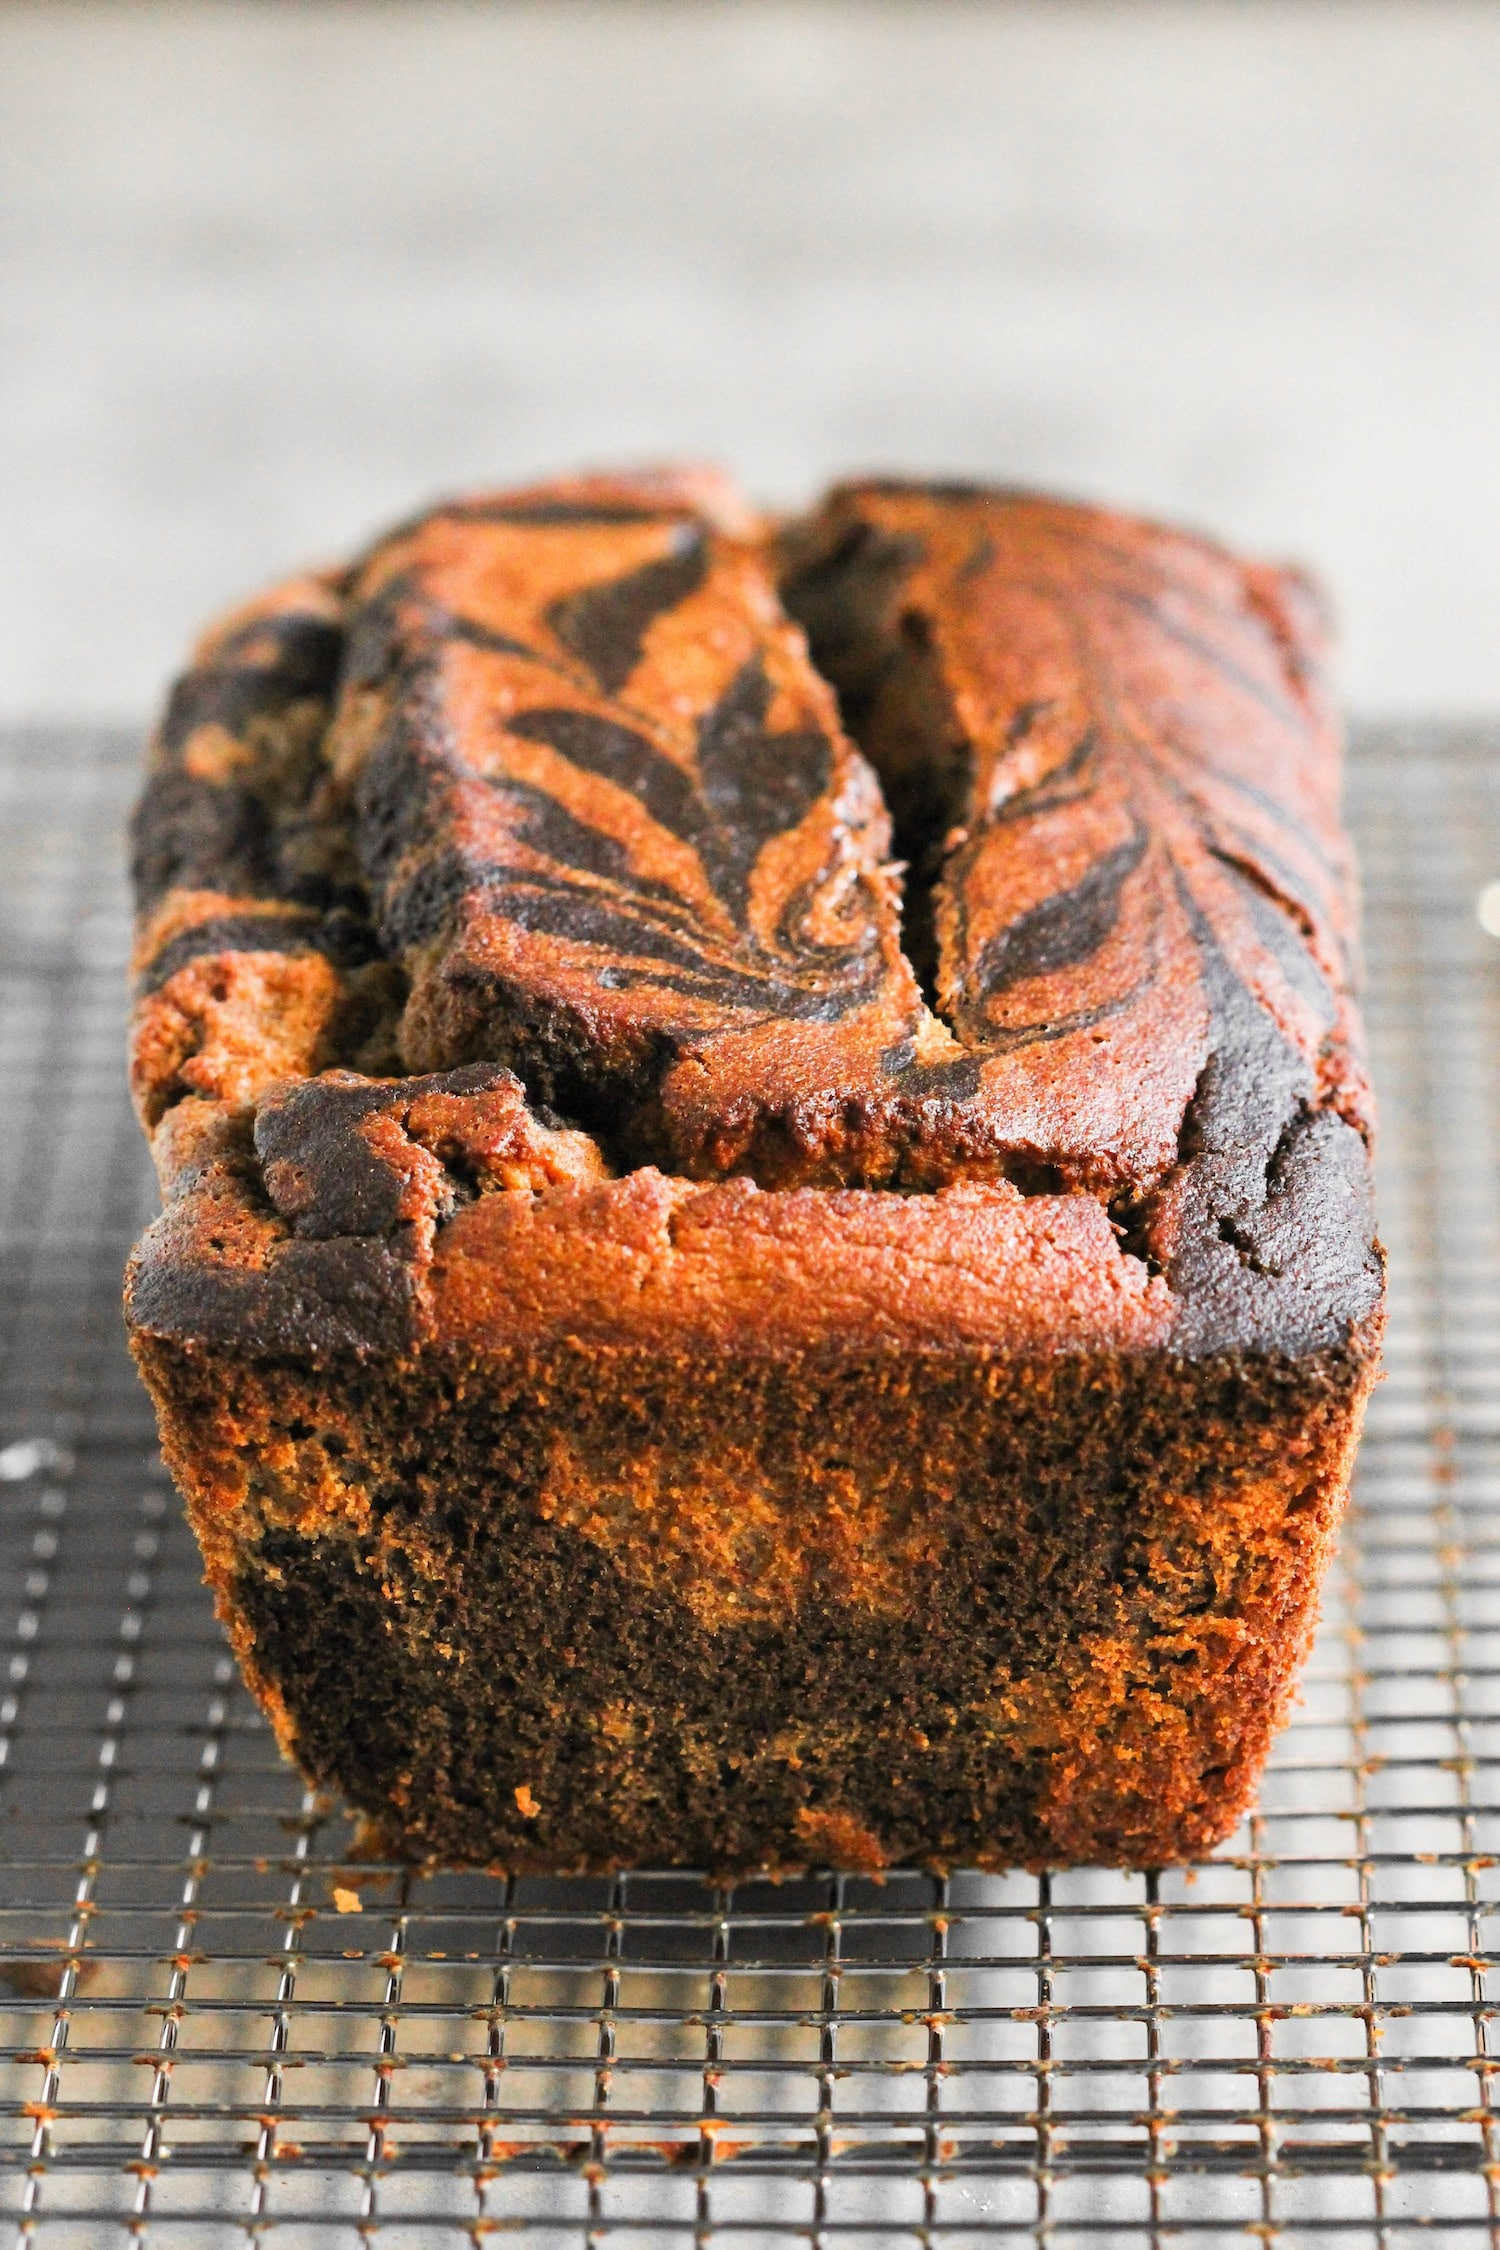 (How to make Marble Bread) This Marbled Chocolate Banana Bread is so moist, fluffy, springy, and sweet! It doesn't taste healthy, sugar free, gluten free, dairy free, high protein, or whole grain ONE BIT. It tastes like it's from a bakery!